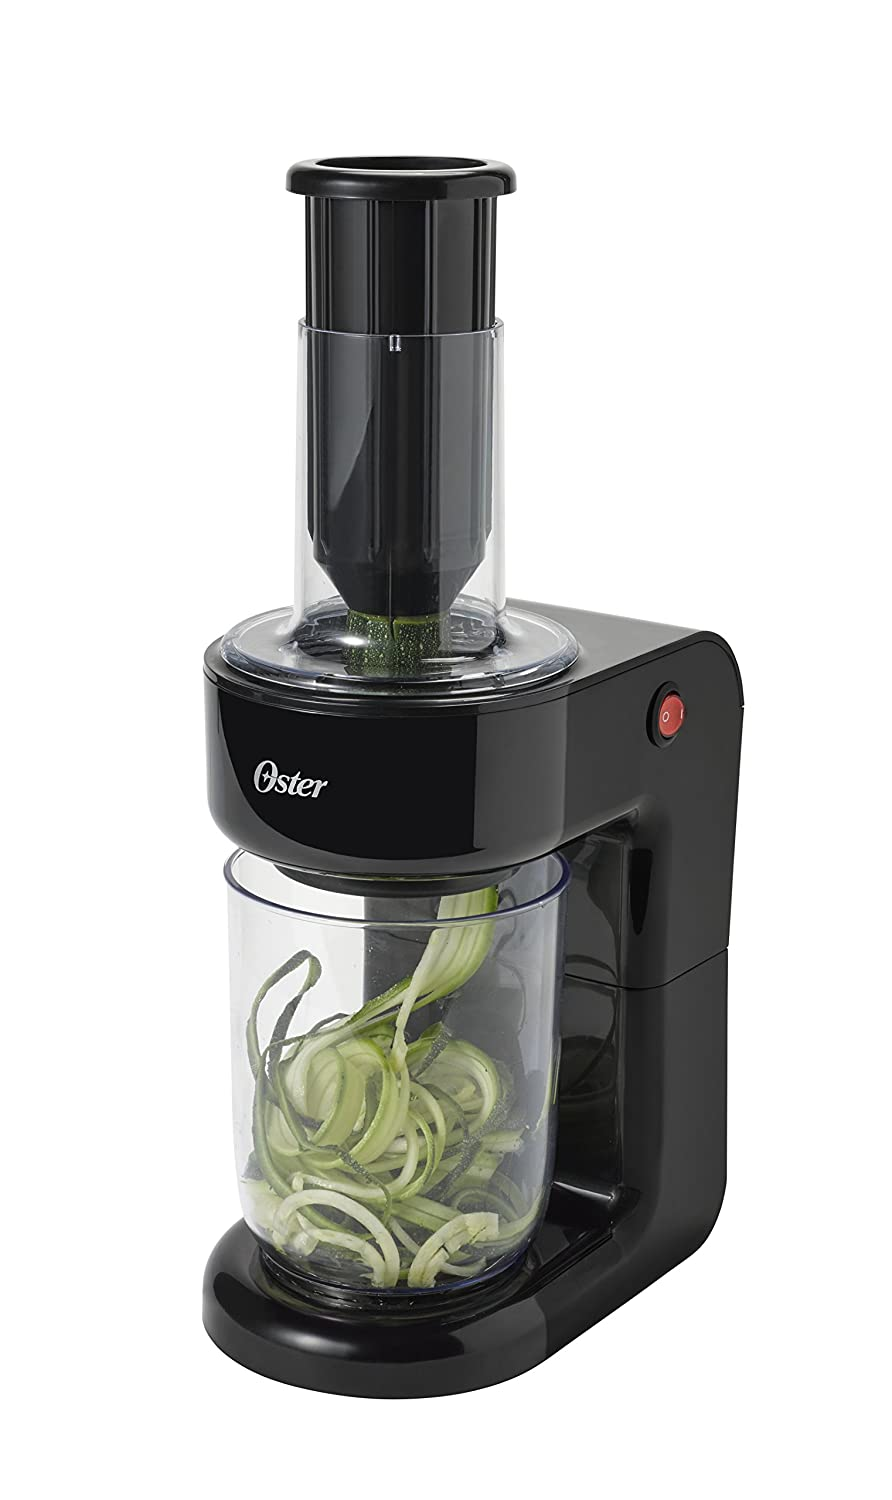 Oster FPSTES1000 Black Electric Spiralizer 1